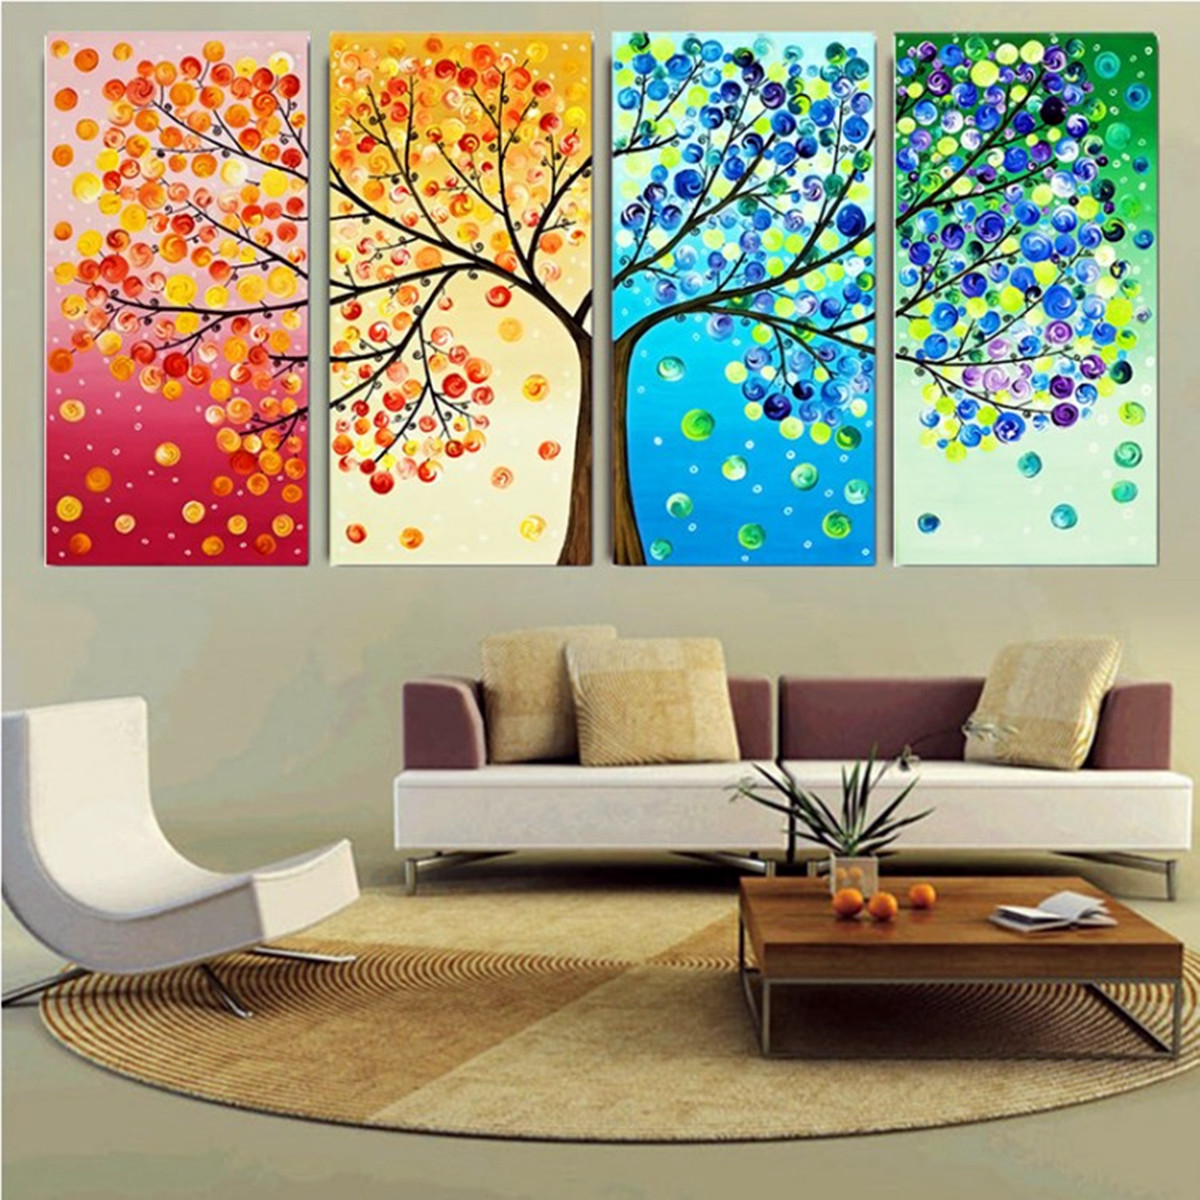 Diy Handmade Colorful Season Tree Counted Cross Stitch Embroidery Kit Home Decor Ebay